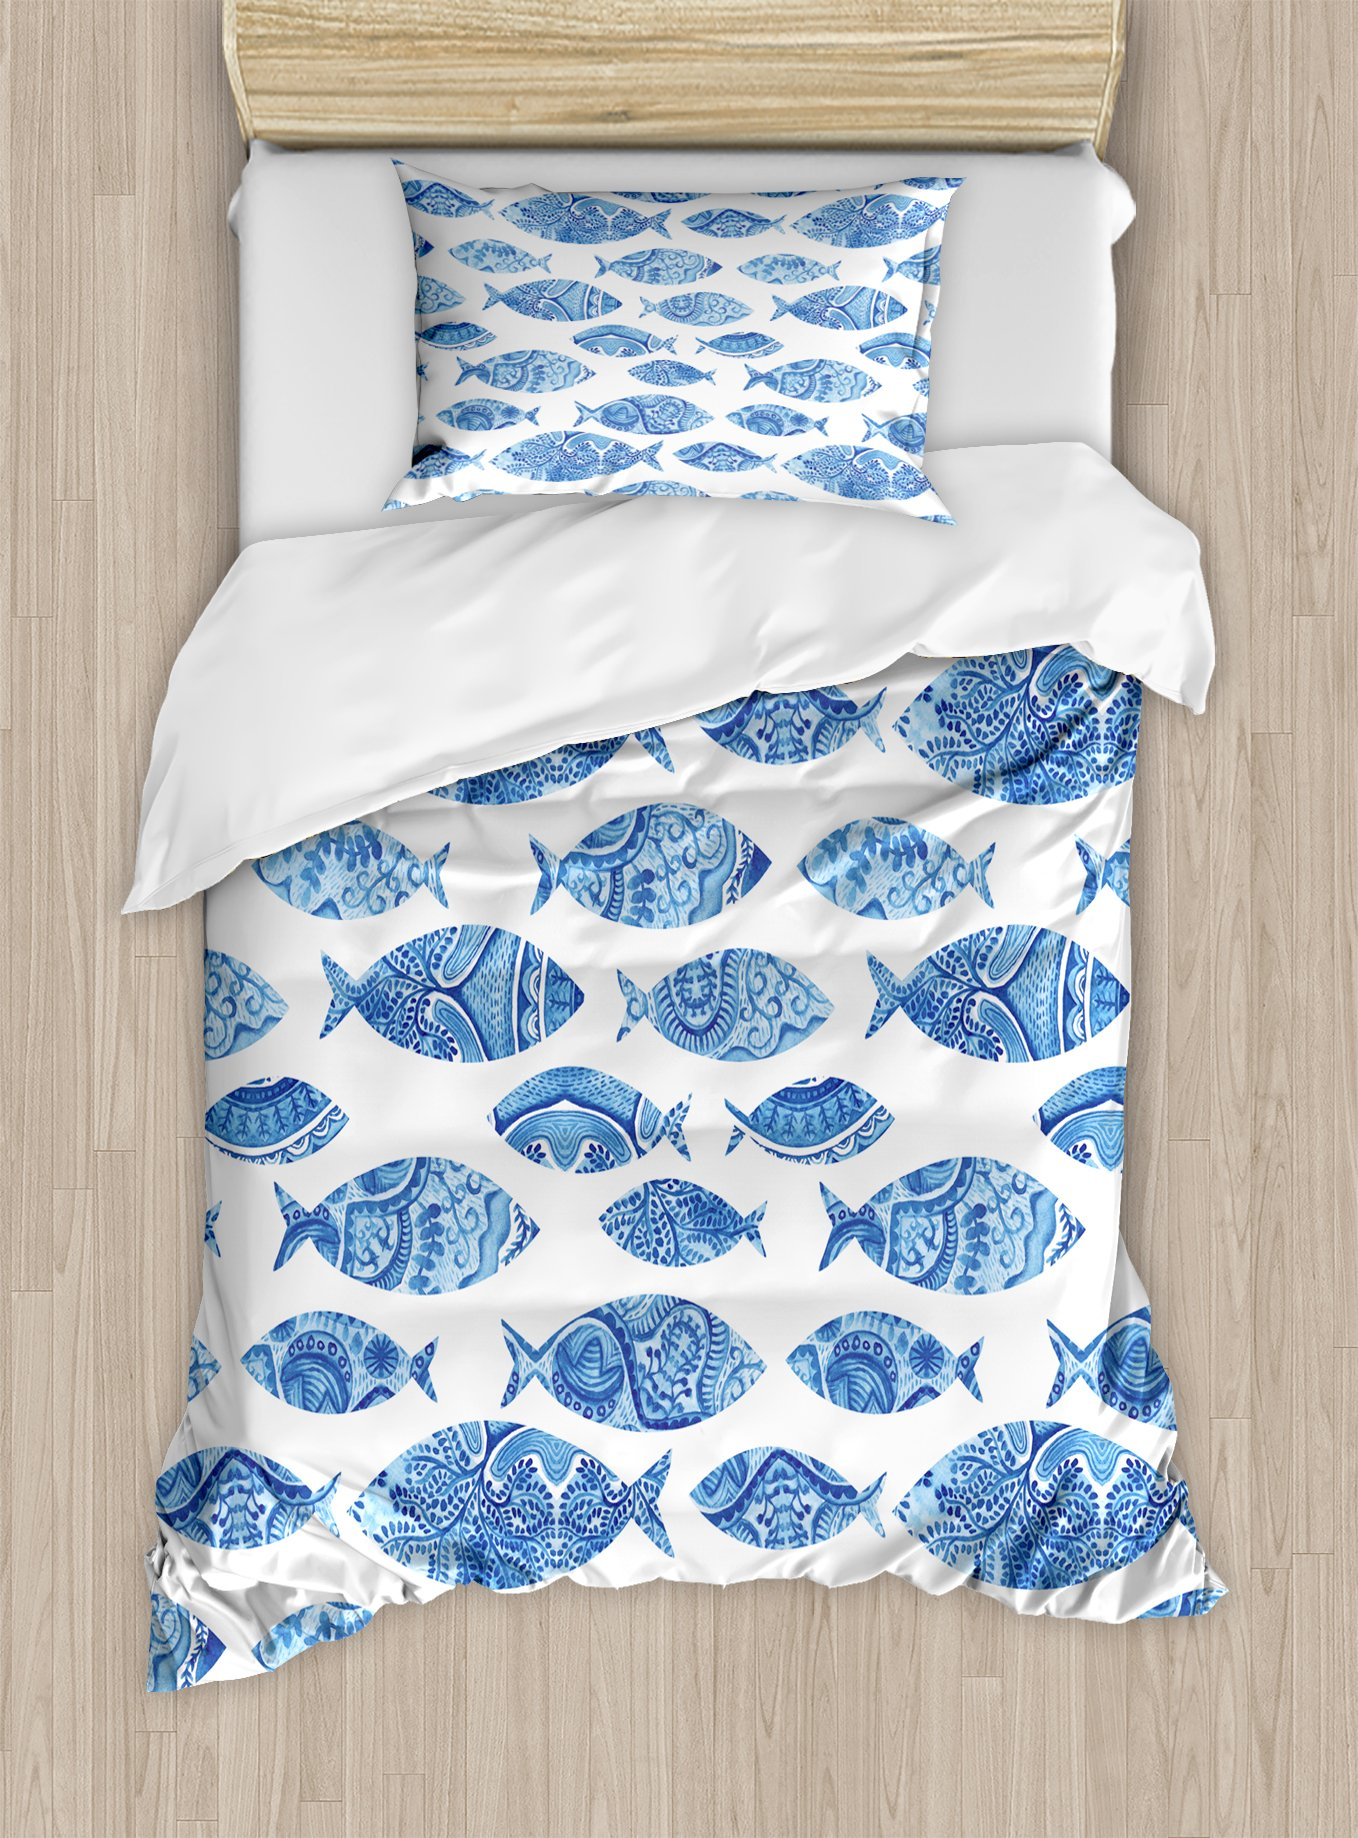 Ambesonne Blue Duvet Cover Set Twin Size, Fish Sea Animal Figures with Ancient Ottoman Ornate Mosaic Hand Drawn Style Marine Artwork, Decorative 2 Piece Bedding Set with 1 Pillow Sham, Blue